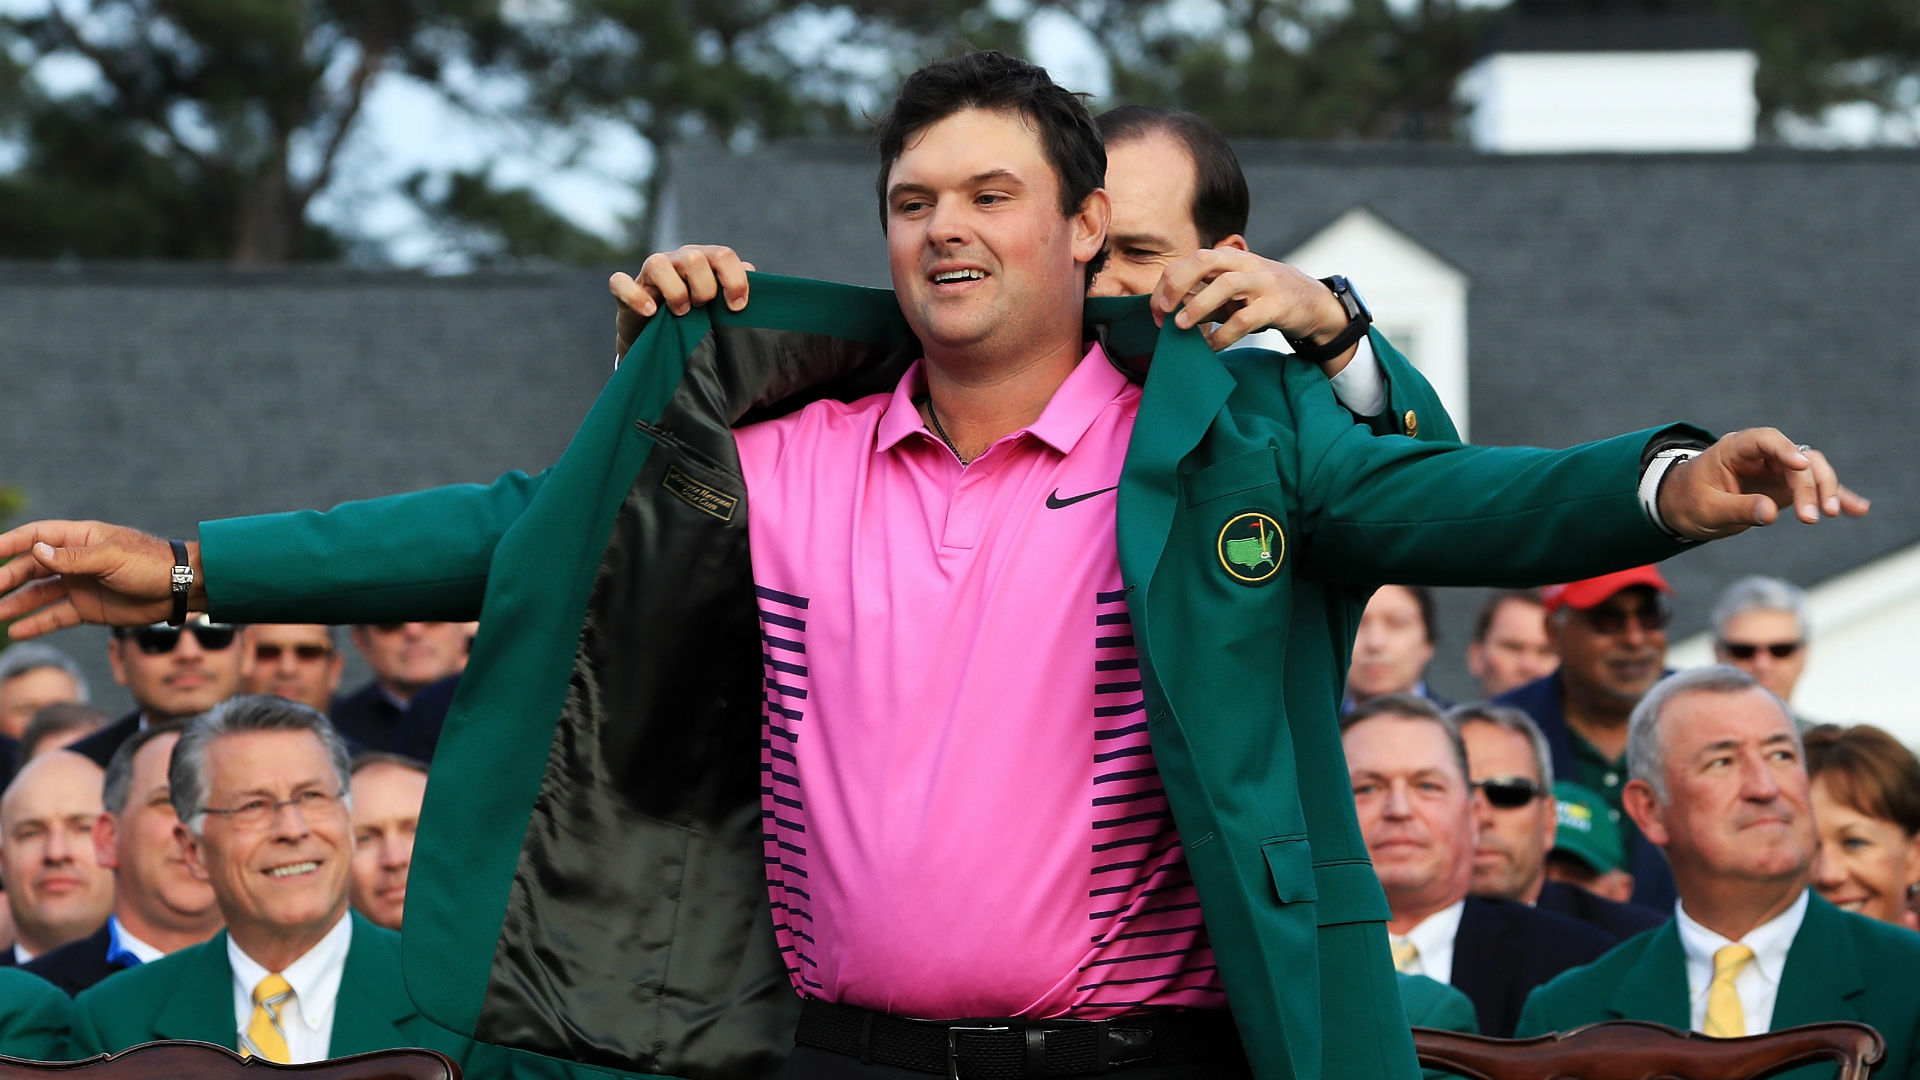 Green jacket ceremony cancelled due to weather concerns at Augusta